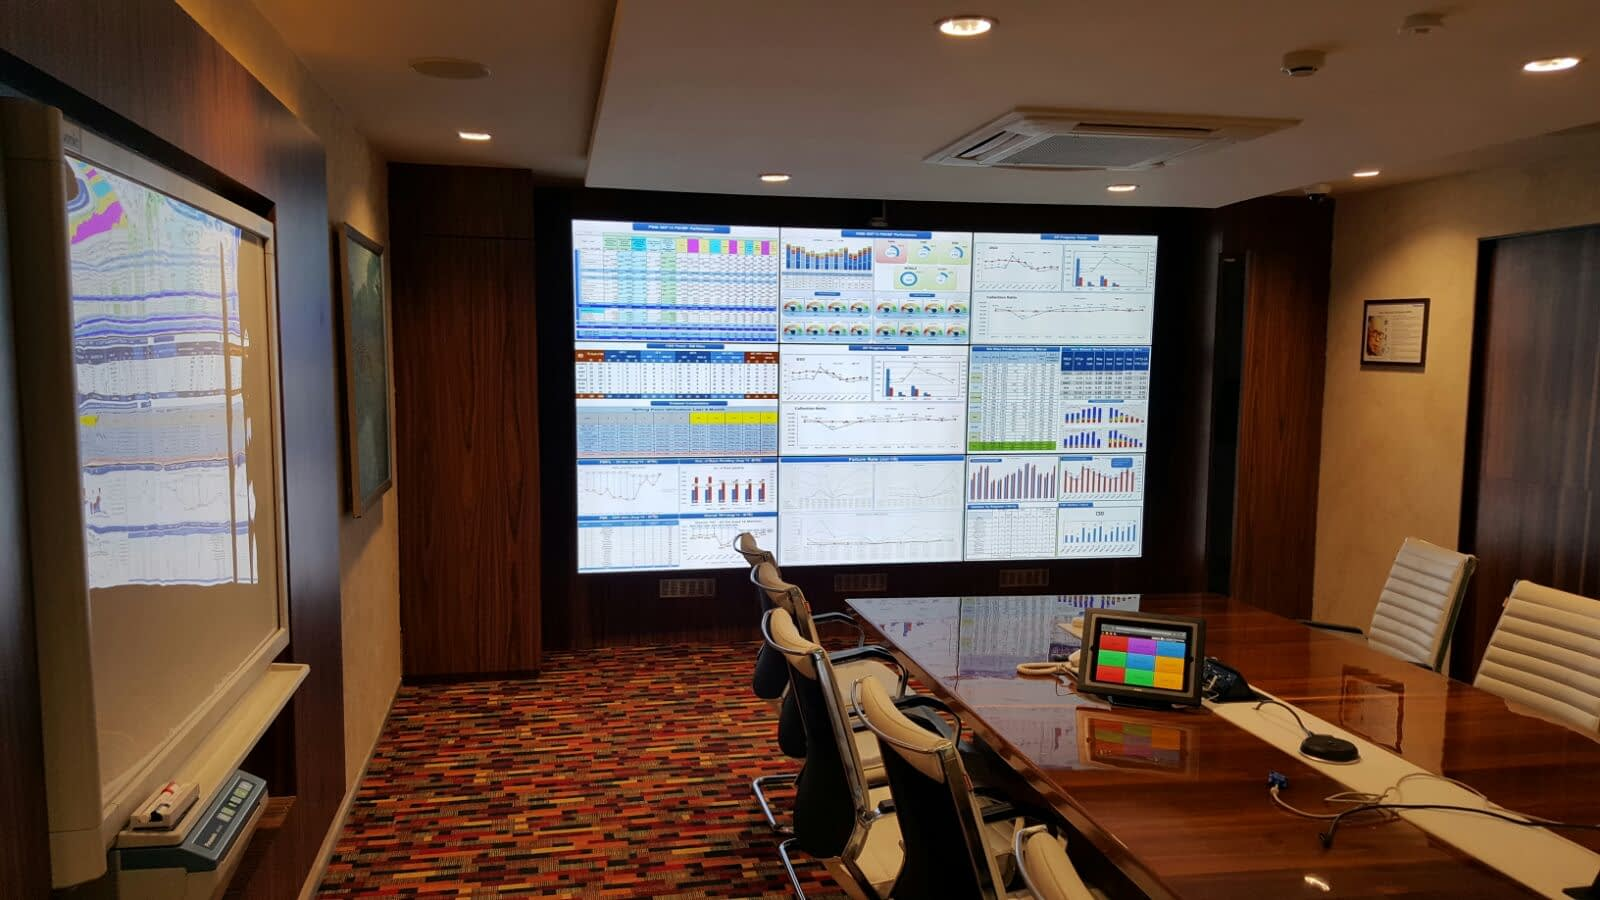 Panasonic India Collaboration Room